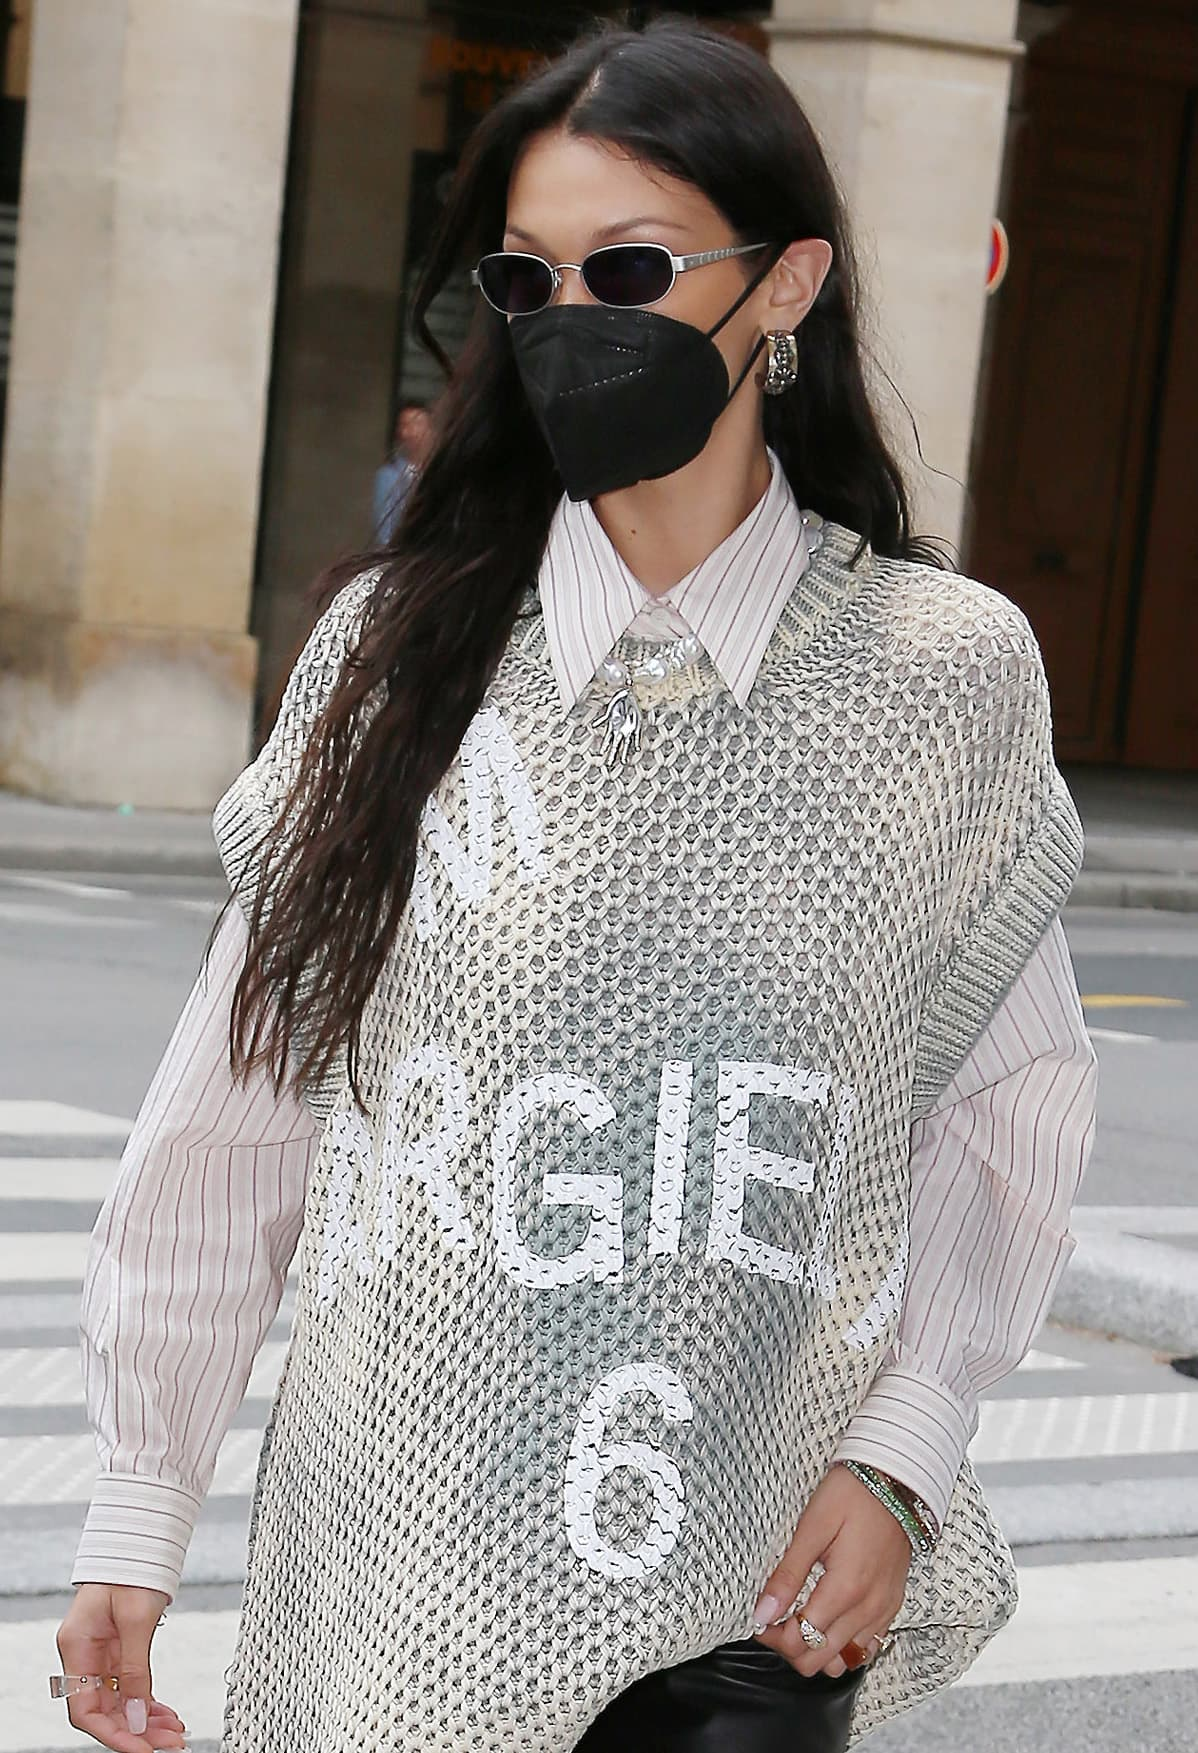 Bella Hadid wears her long tresses down and styles her edgy look with skinny sunglasses and chunky earrings